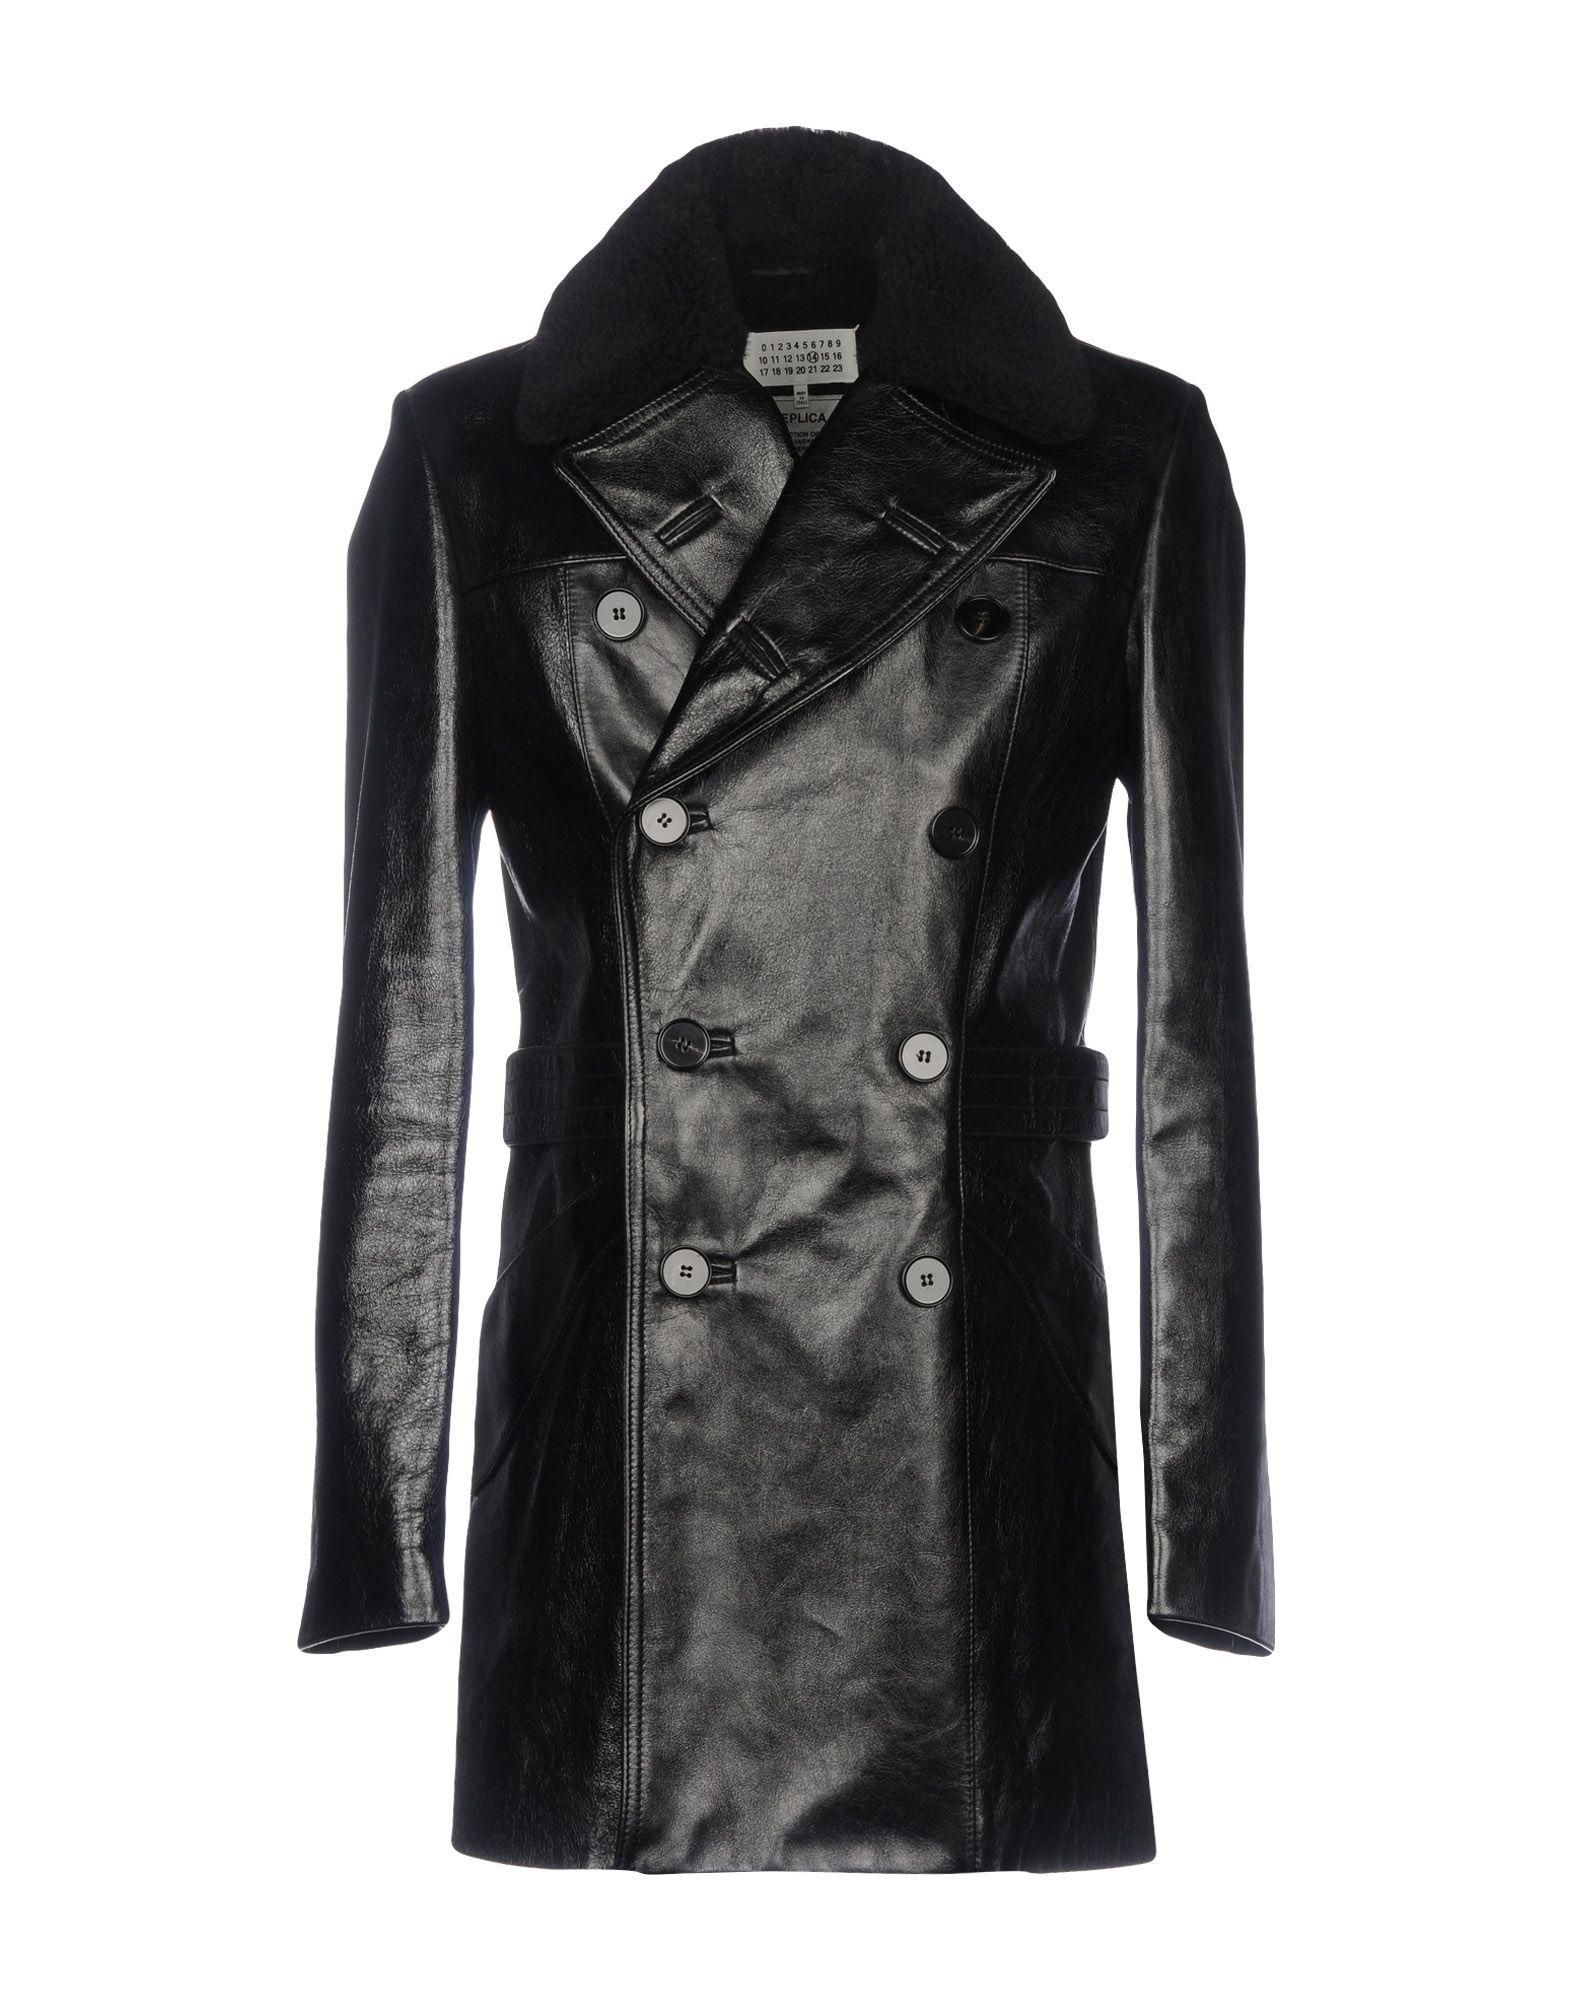 97cbeb247b77 Maison Margiela Coat in Black for Men - Lyst